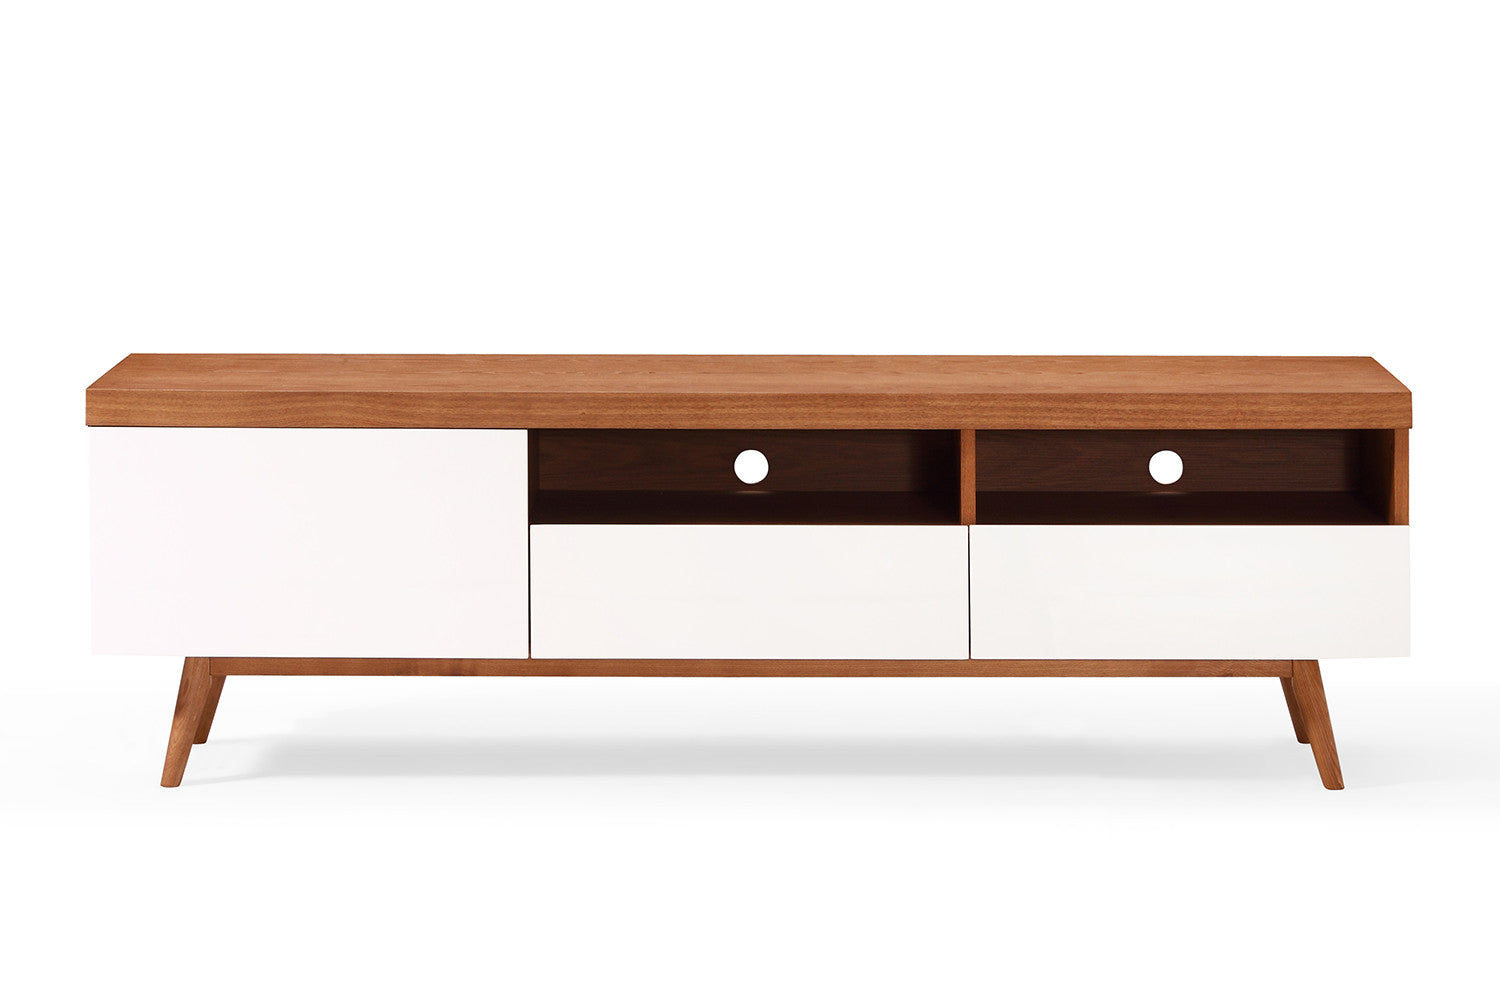 meubles dewarens - Meuble Tv Design Scandinave